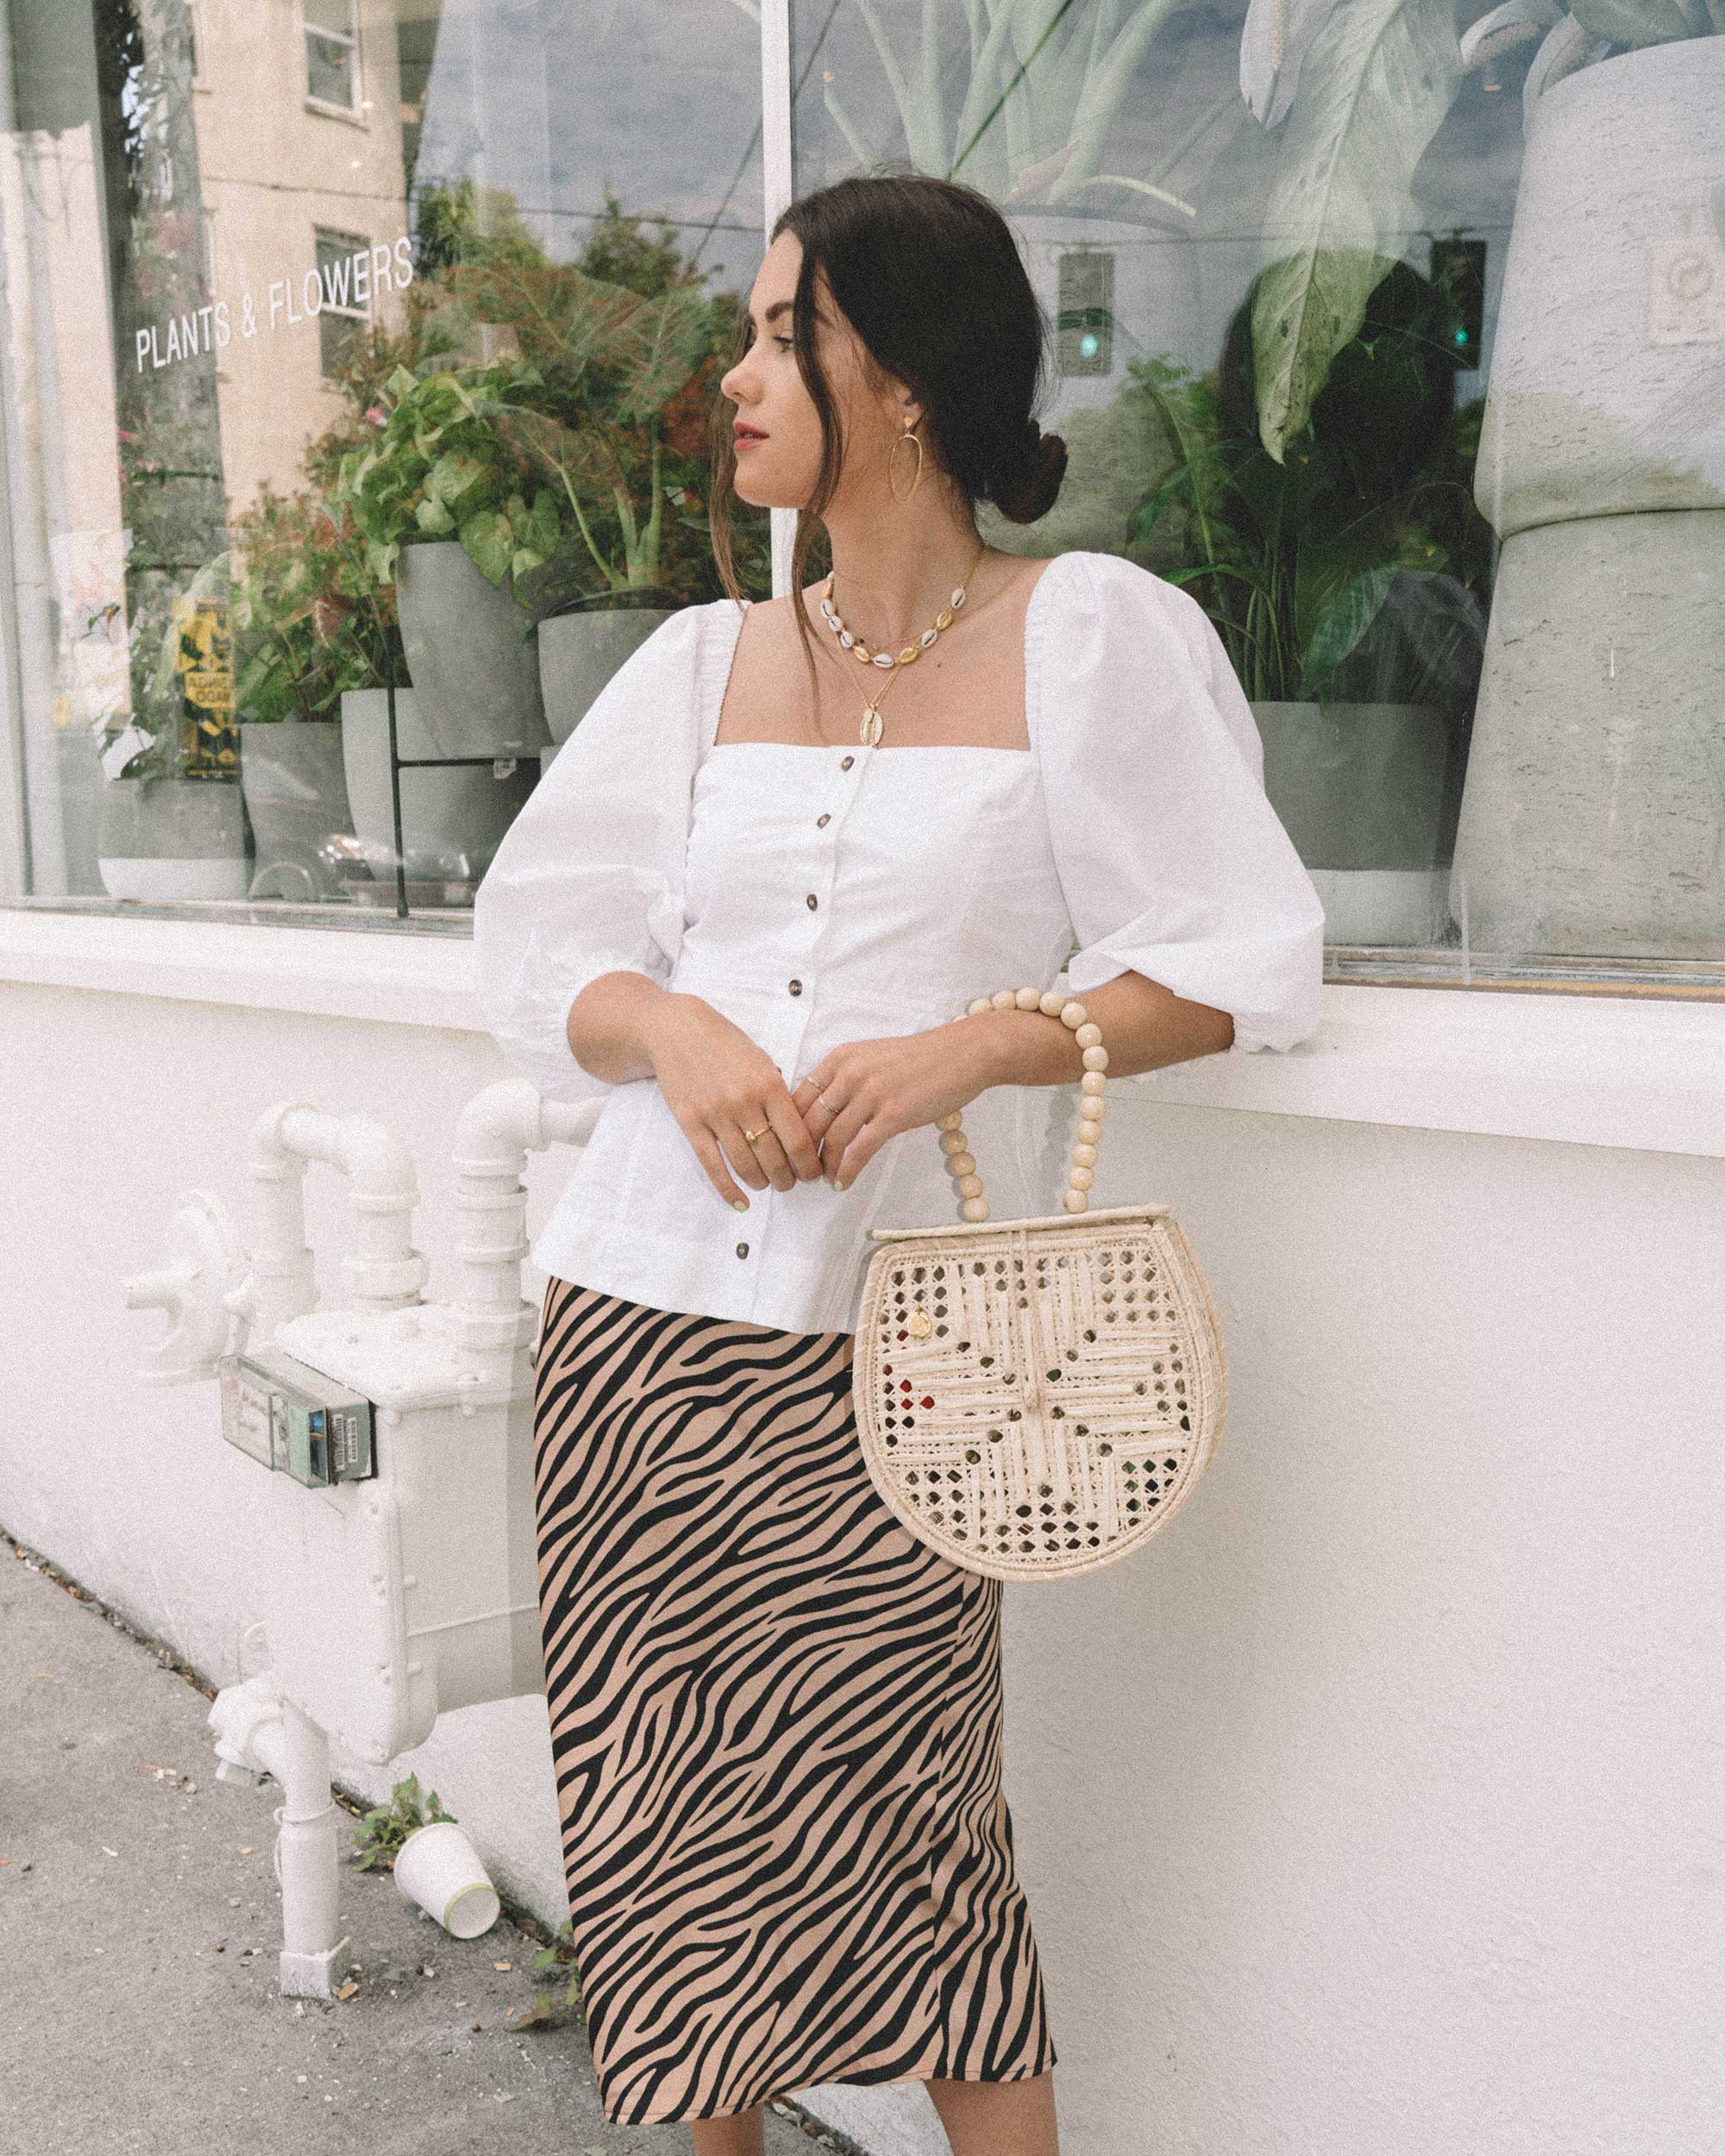 Sarah Butler of Sarah Styles Seattle  wearing GANNI Puff Sleeve Top and leopard skirt in Seattle  | @sarahchristine - 2.jpg